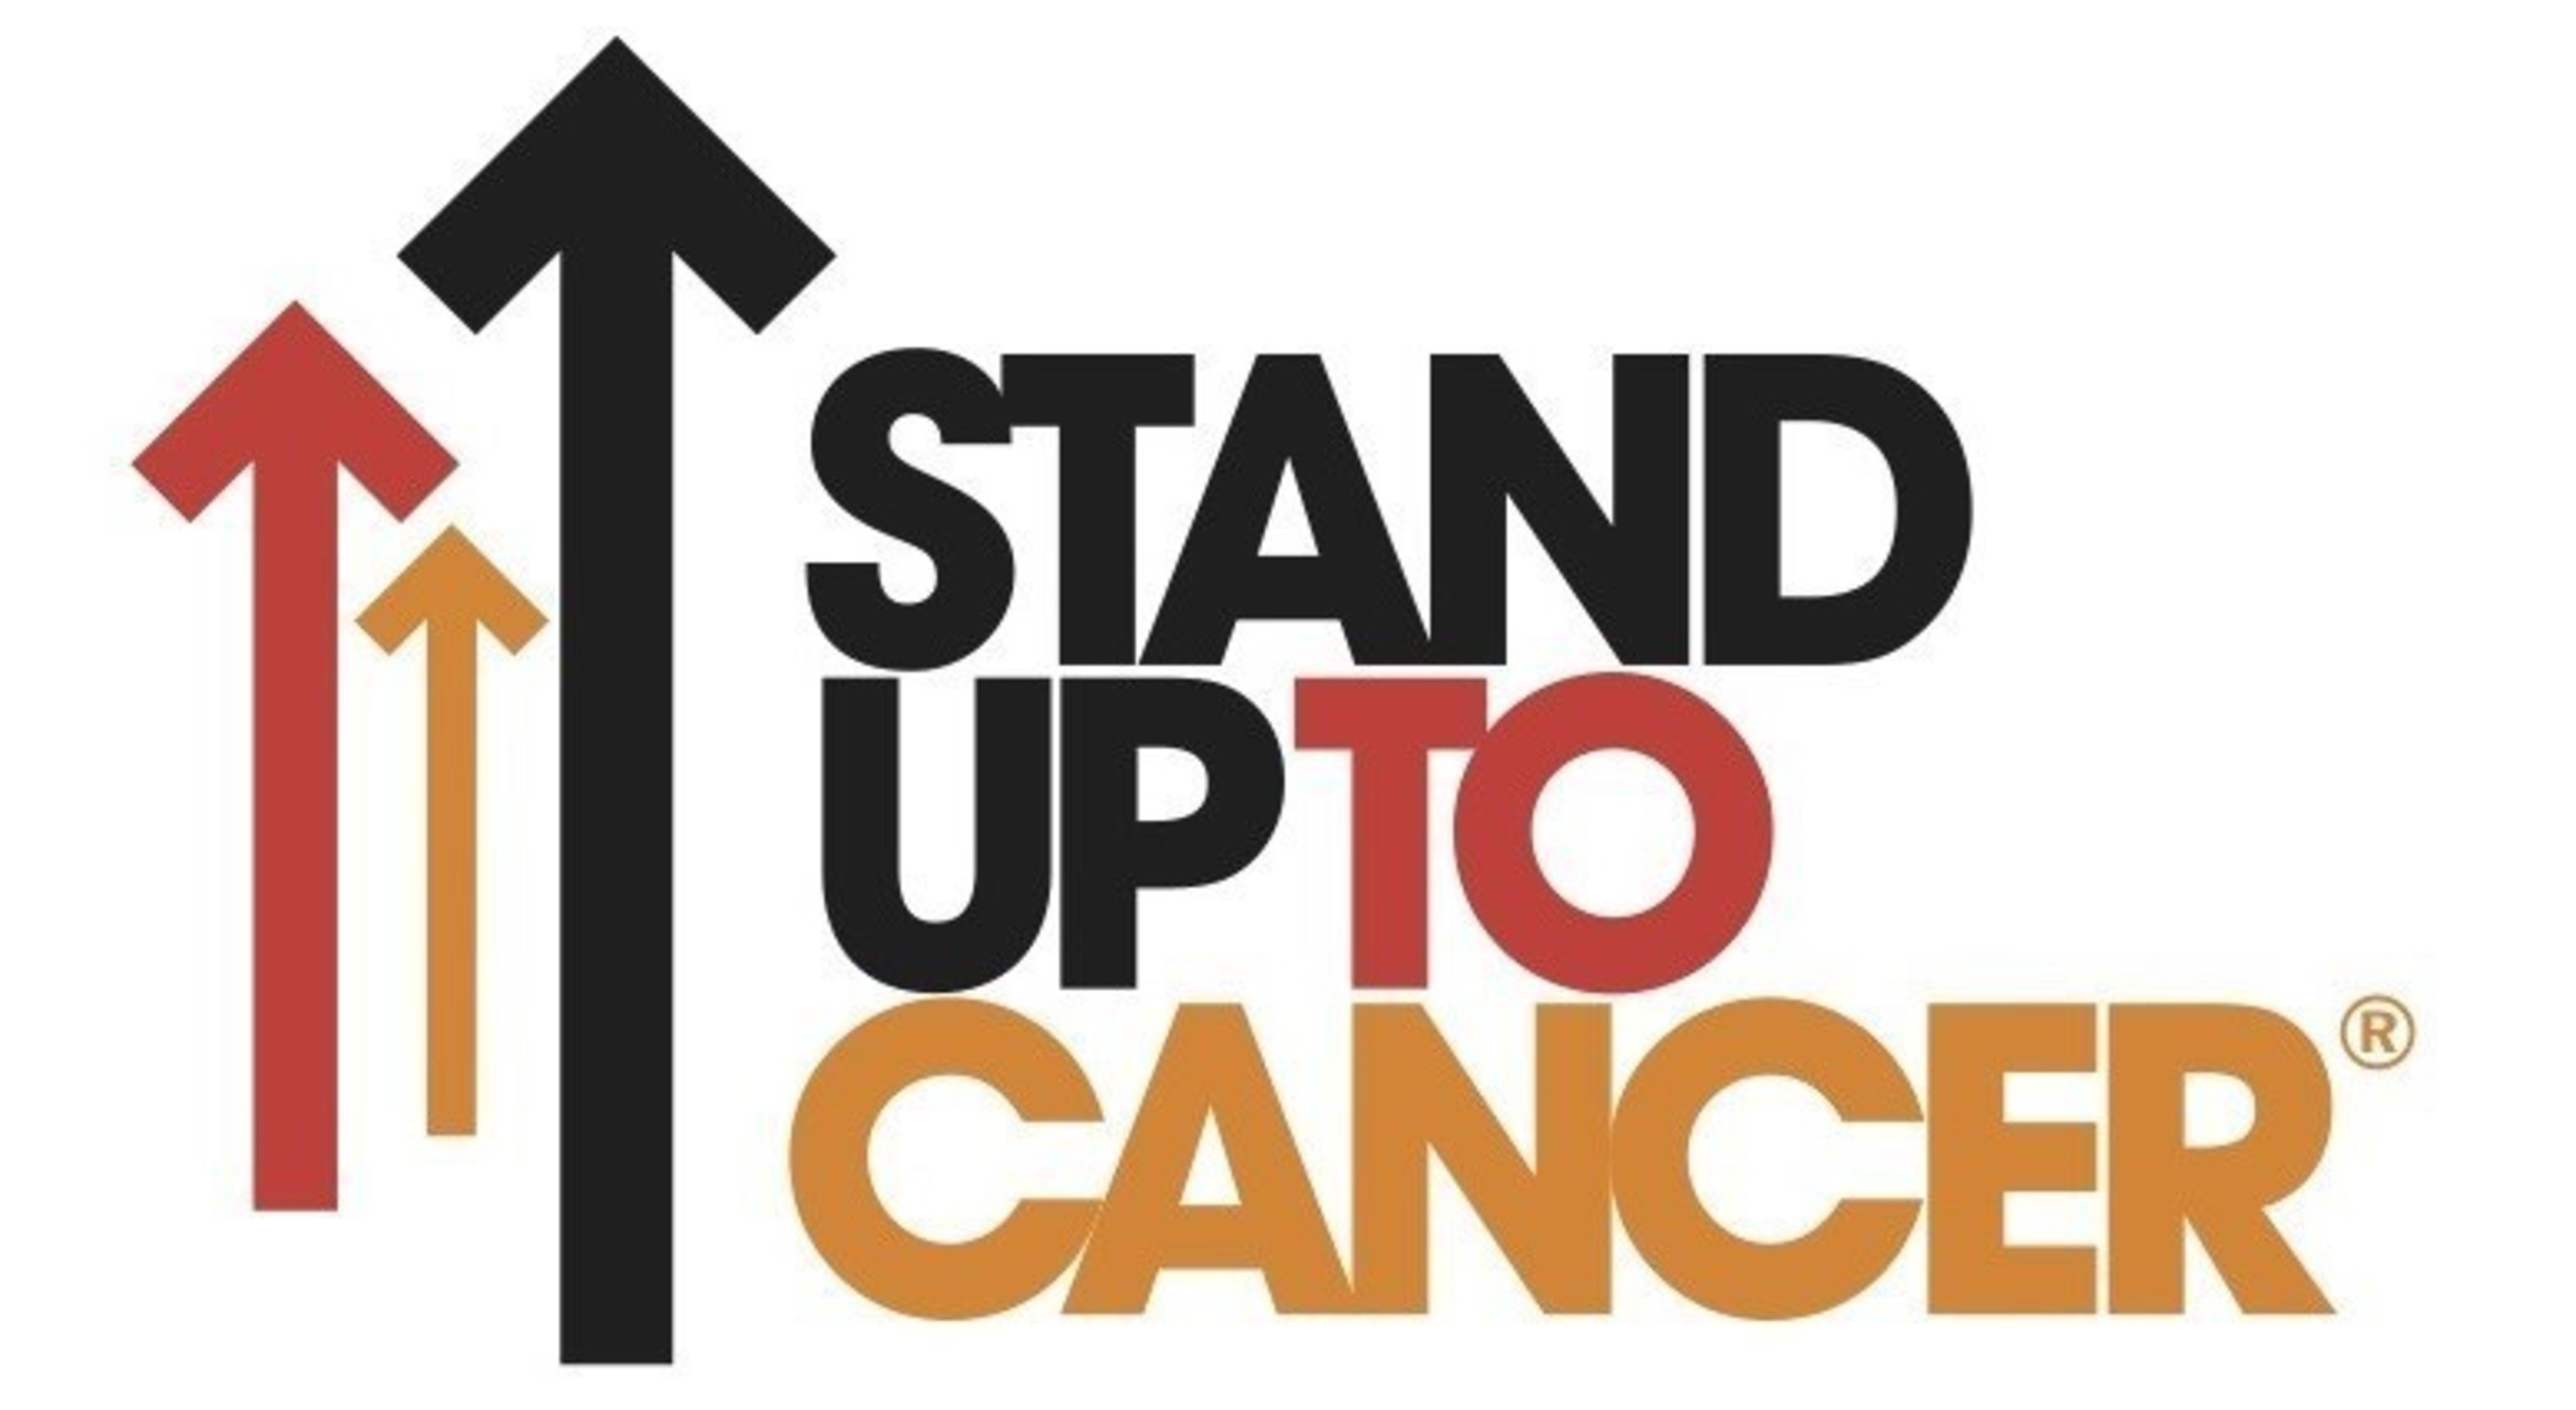 More Than 90 Iconic Buildings And Landmarks In The U.S. And Canada Will Light Up In Support Of Stand Up To Cancer